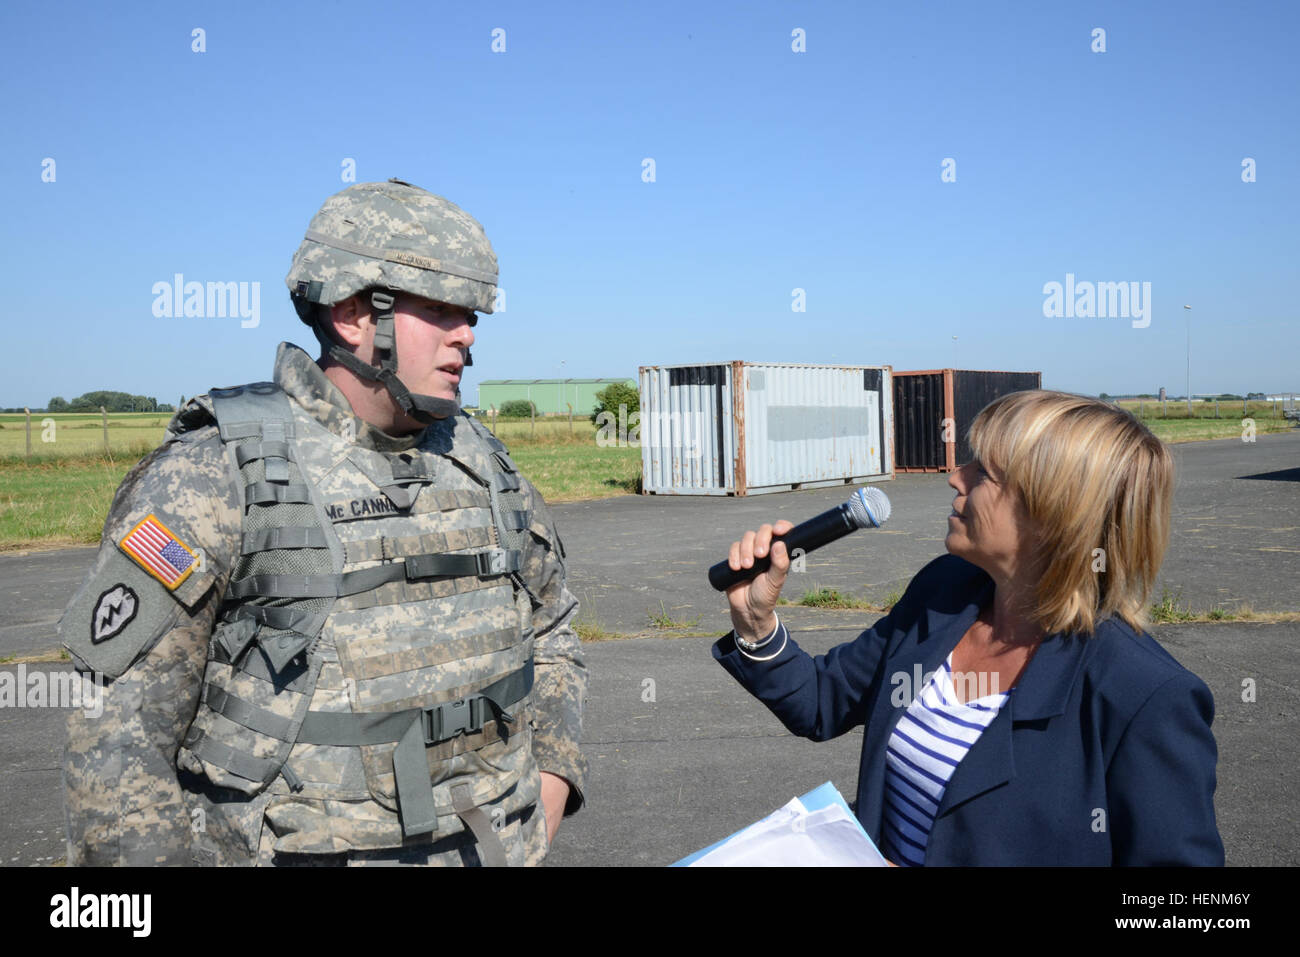 U.S. Army Spc. Mc Cannon, with U.S. Army Garrison Benelux, replies with parsimony on intrusive questions of a simulator - Stock Image